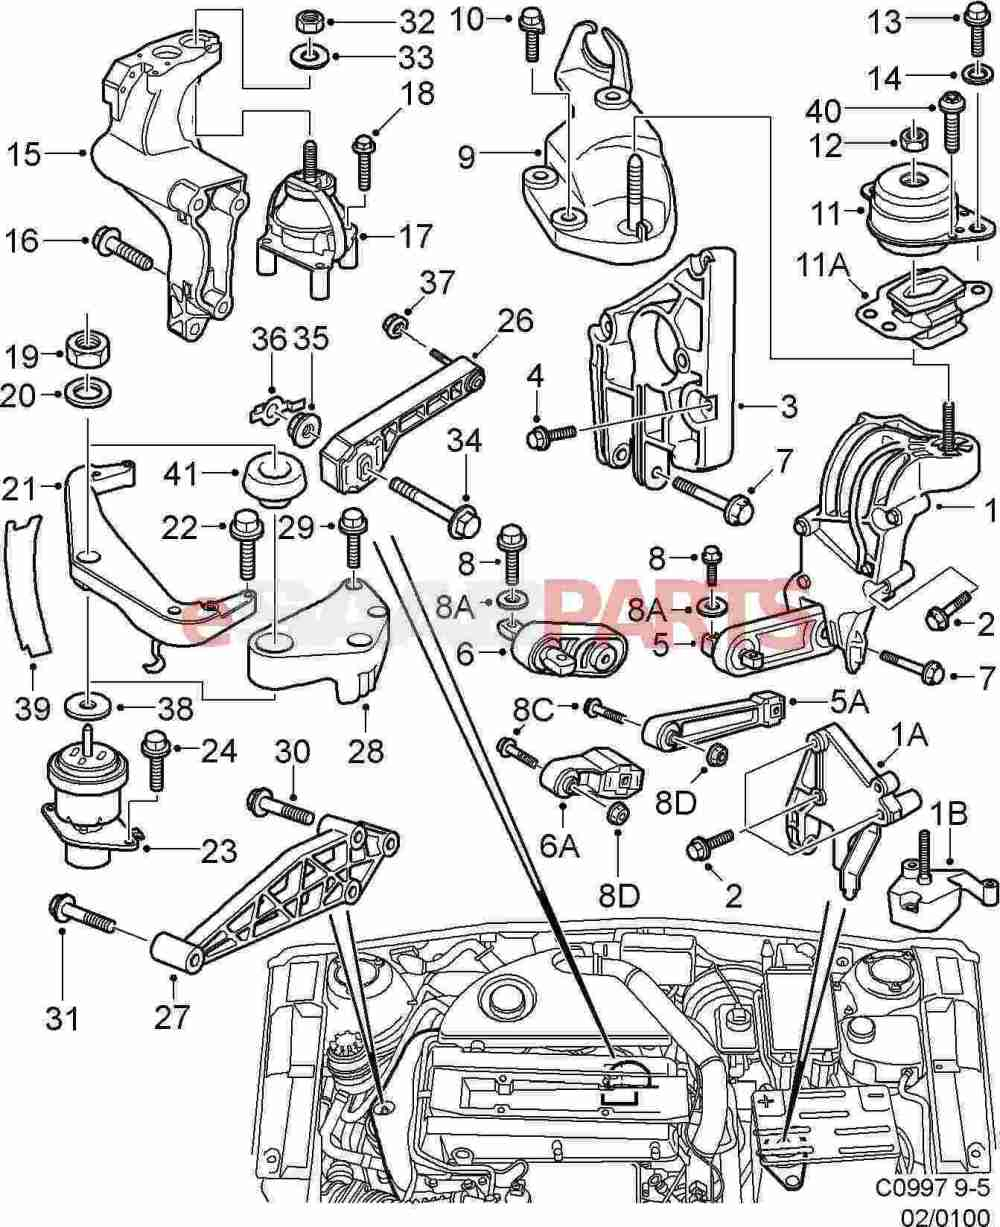 medium resolution of 1999 saab engine diagram wiring diagram todays rh 14 15 9 1813weddingbarn com saab 9000 cs turbo saab 9000 cs turbo